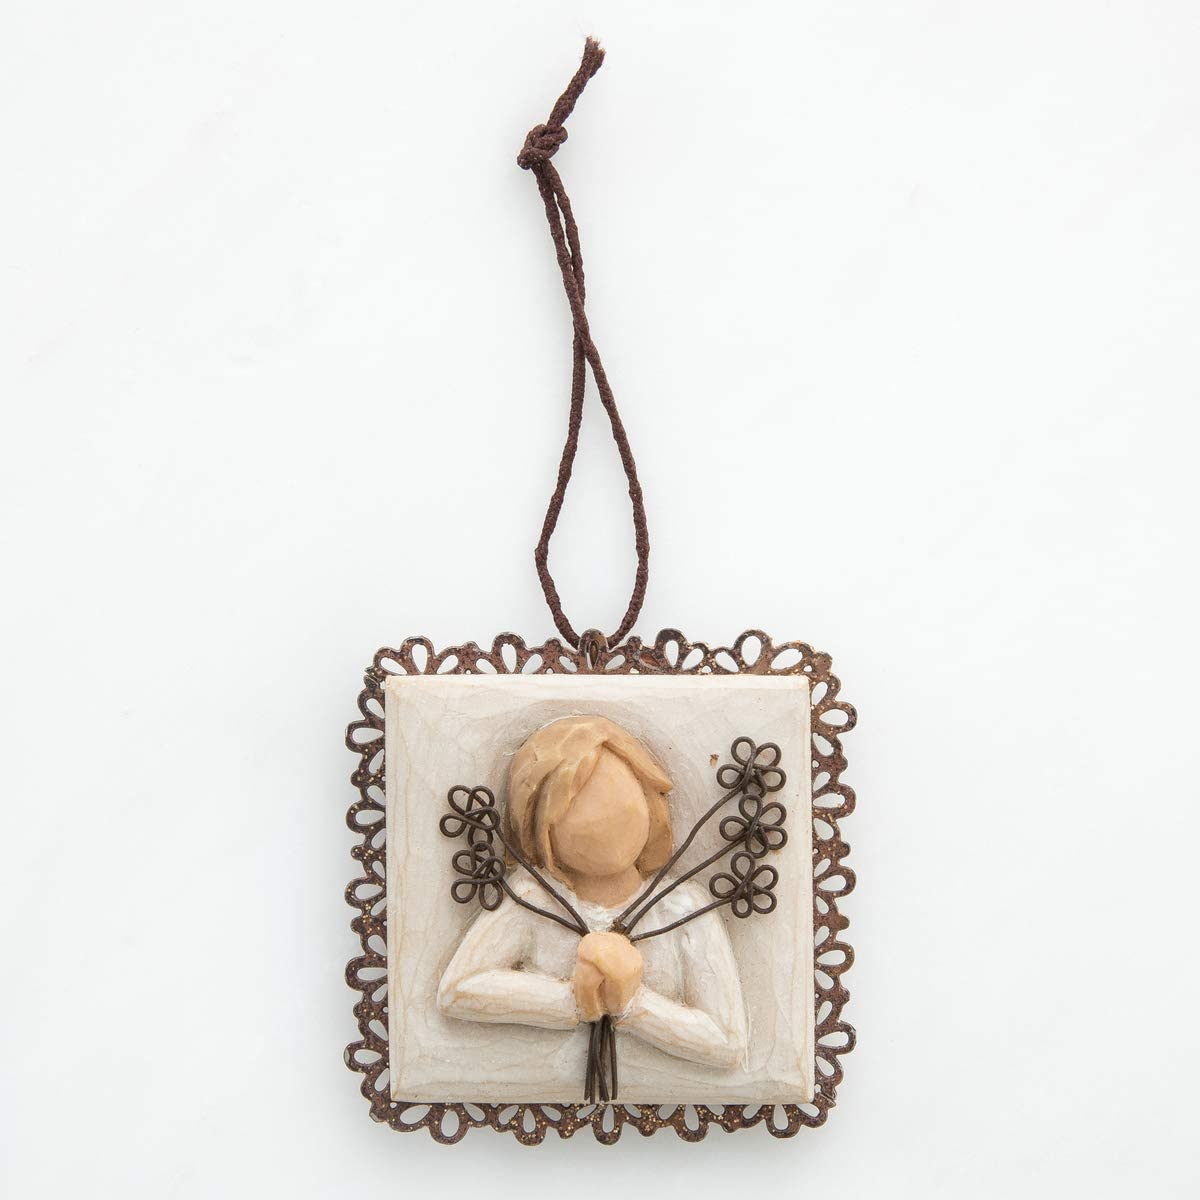 Willow Tree Friendship Metal-Edged Ornament, Sculpted Hand-Painted bas Relief